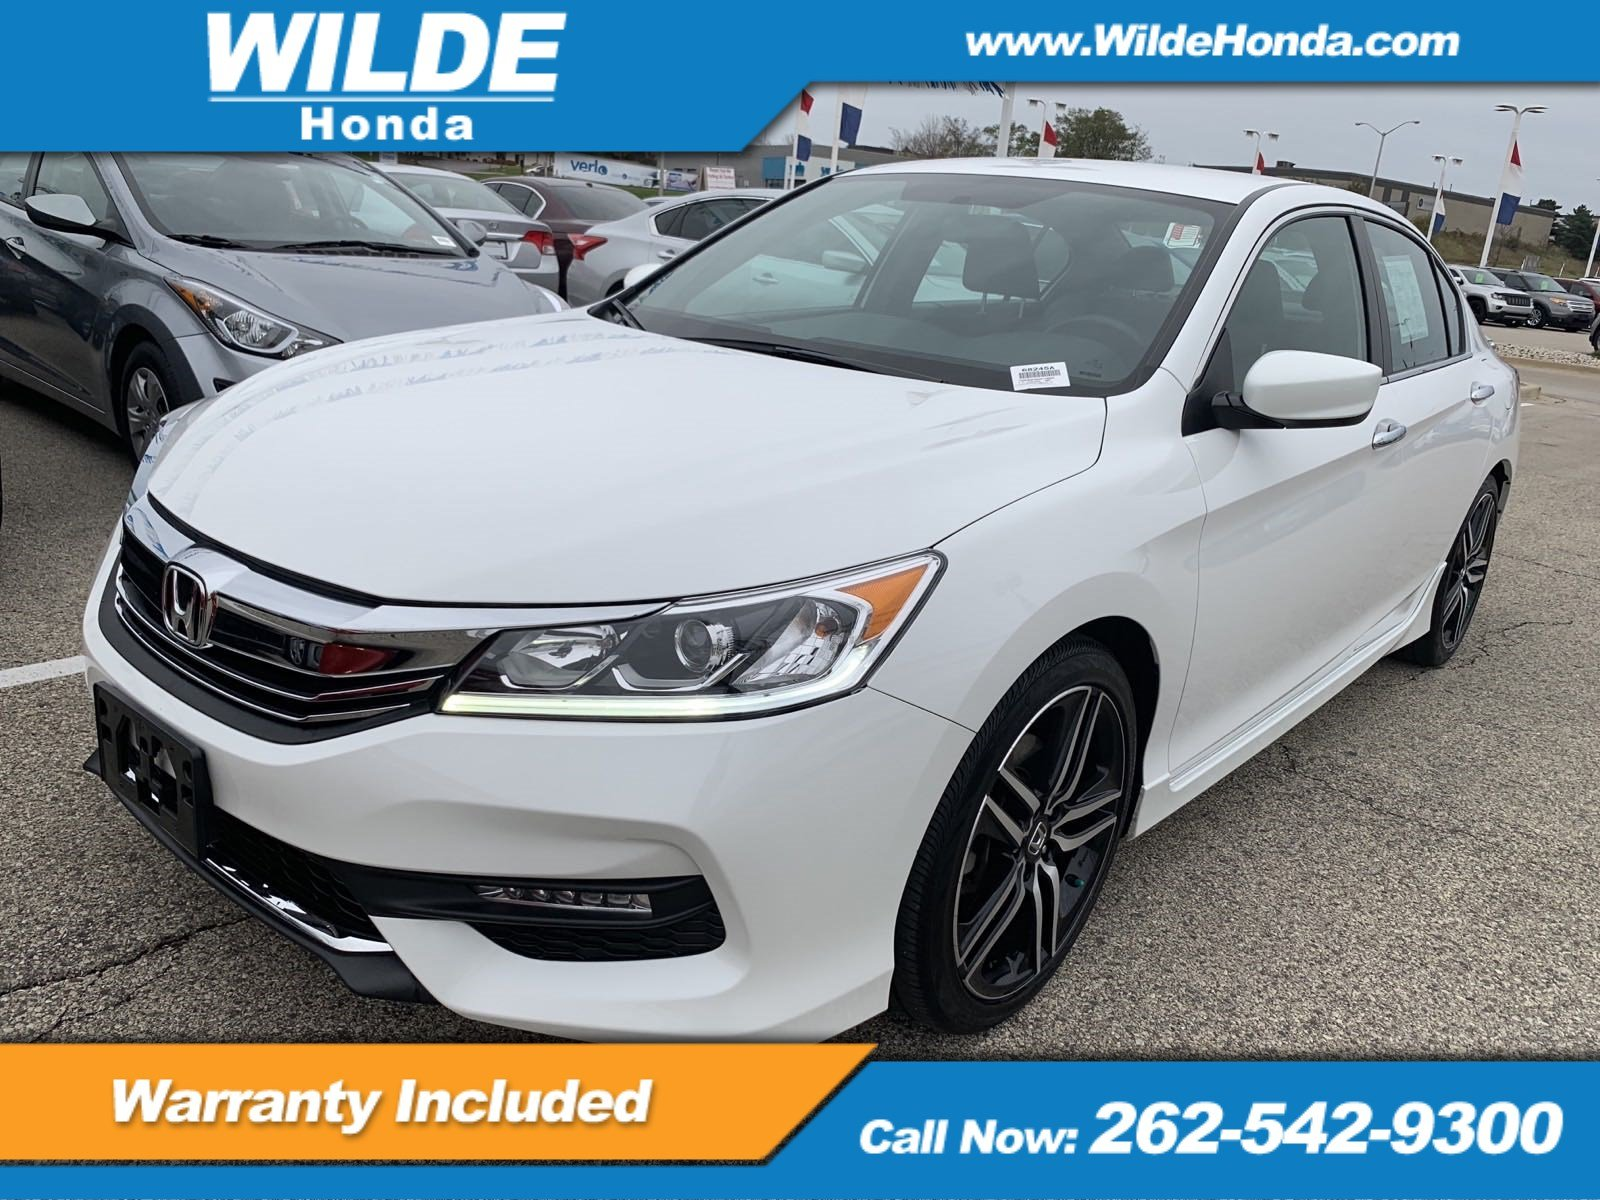 Certified Pre Owned 2016 Honda Accord Sport 4dr Car in A